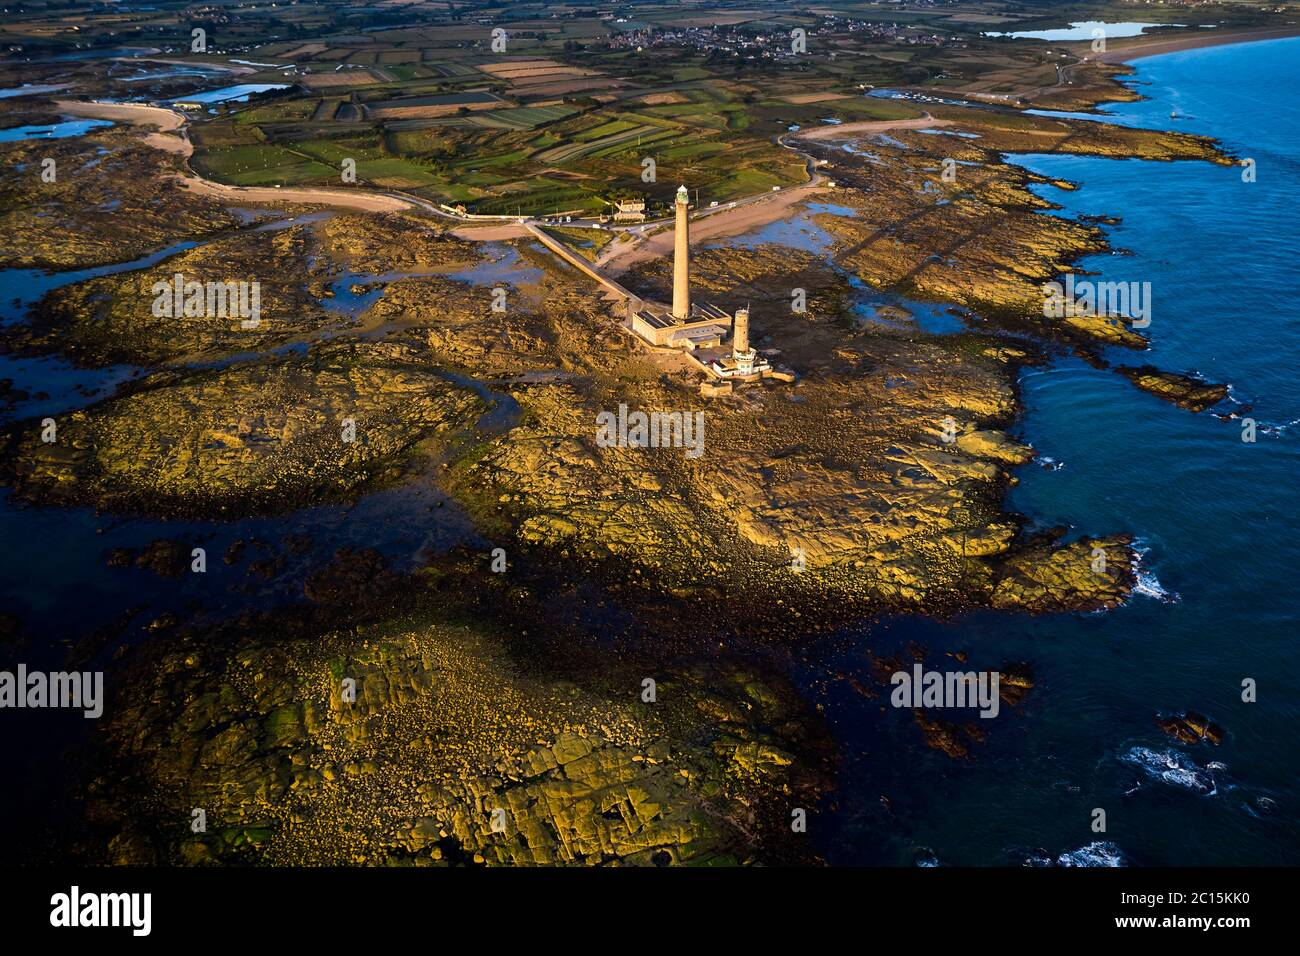 France, Normandy, Manche department, Cotentin, Gatteville-le-Phare or Gatteville-Phare, the lighthouse of Gatteville or lighthouse of Gatteville-Barfl Stock Photo